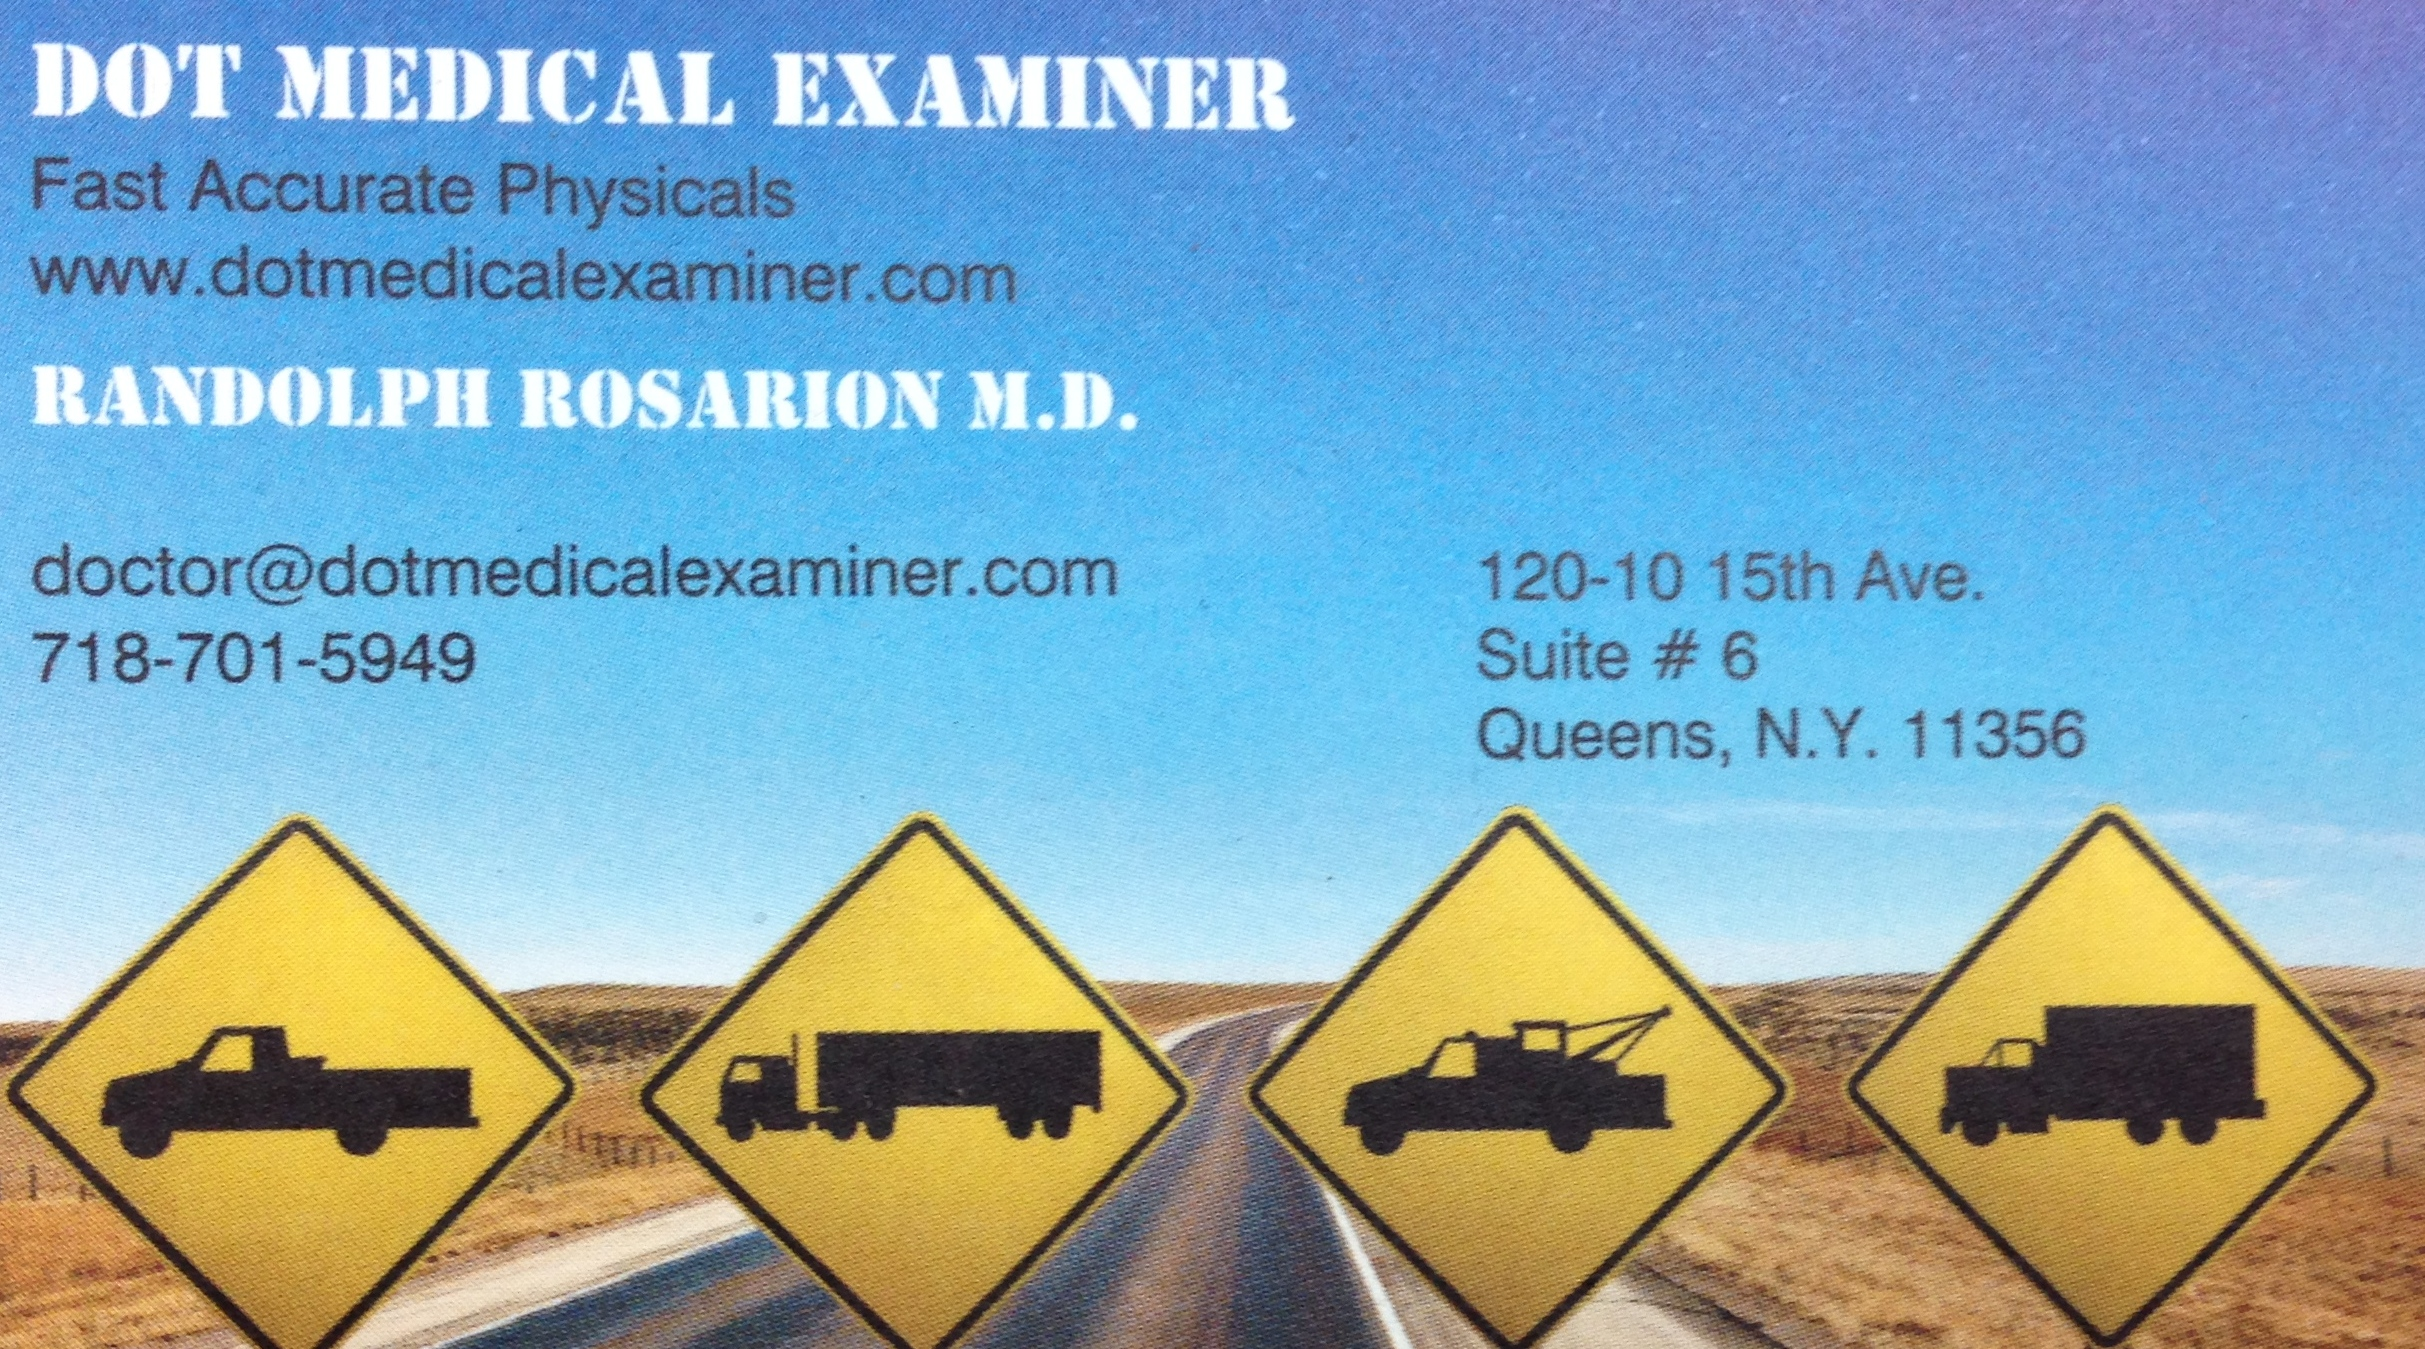 Certified Dot Medical Examiner Truck Driver Physicals Nyc Tlc